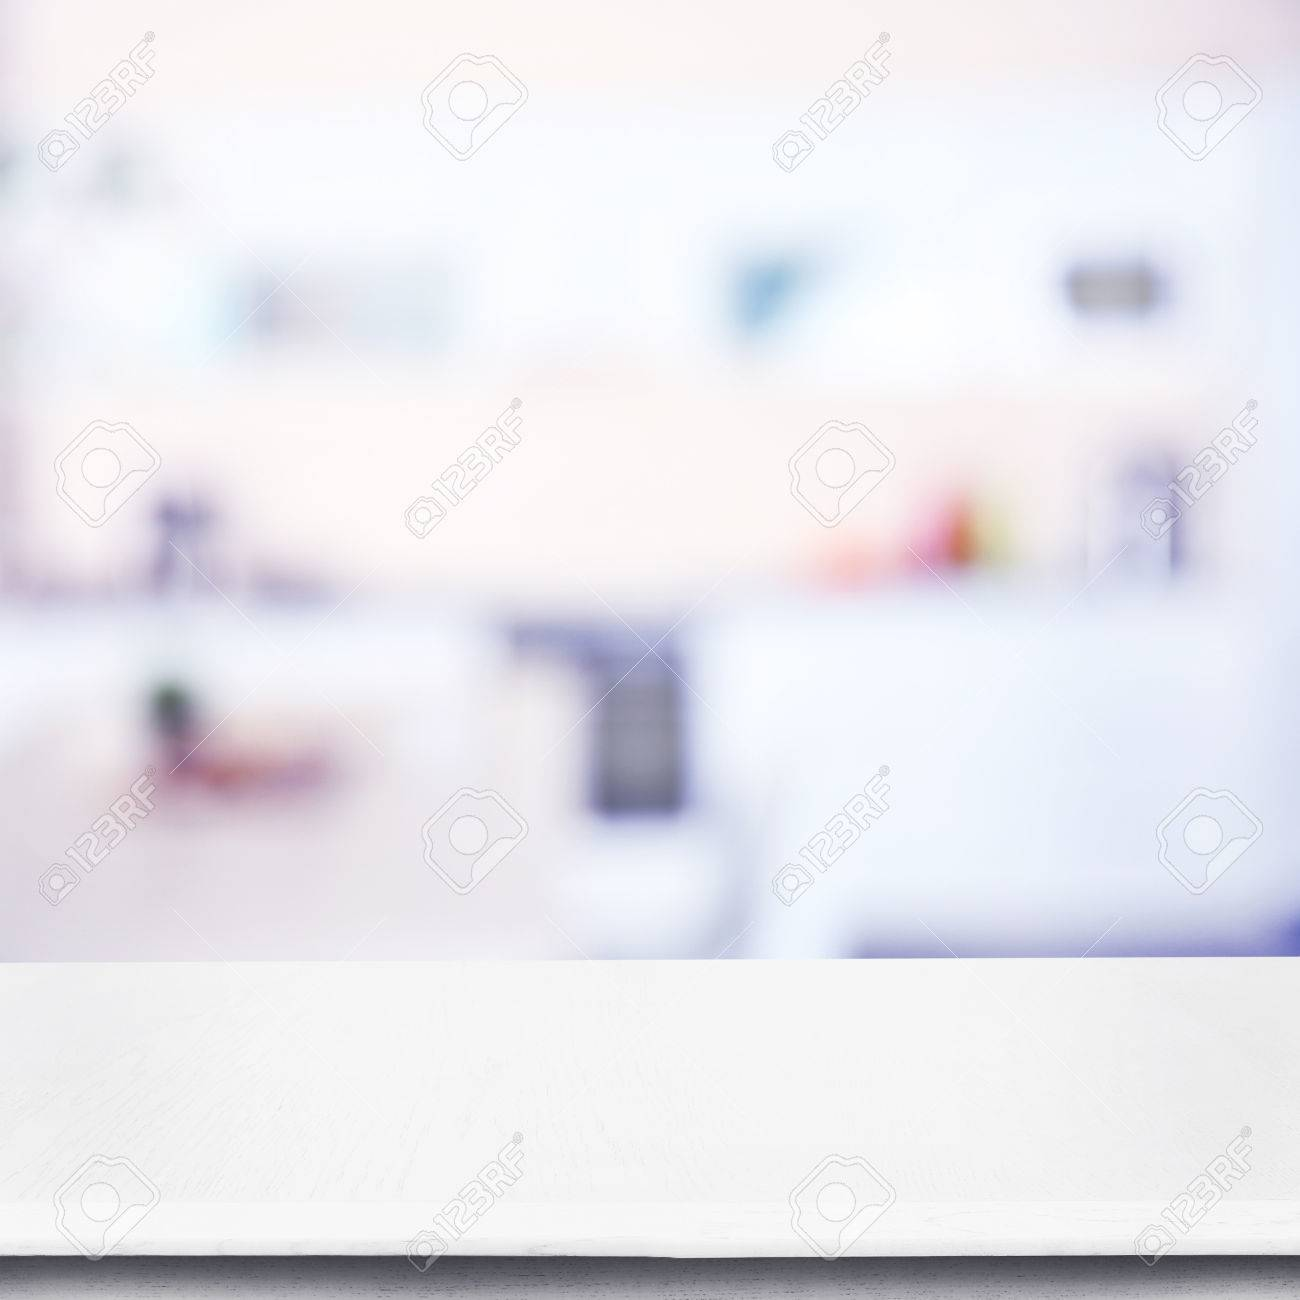 Empty wood table and blurred living room background stock photo - Empty Wooden Table And Blurred Kitchen Background Stock Photo 53818338